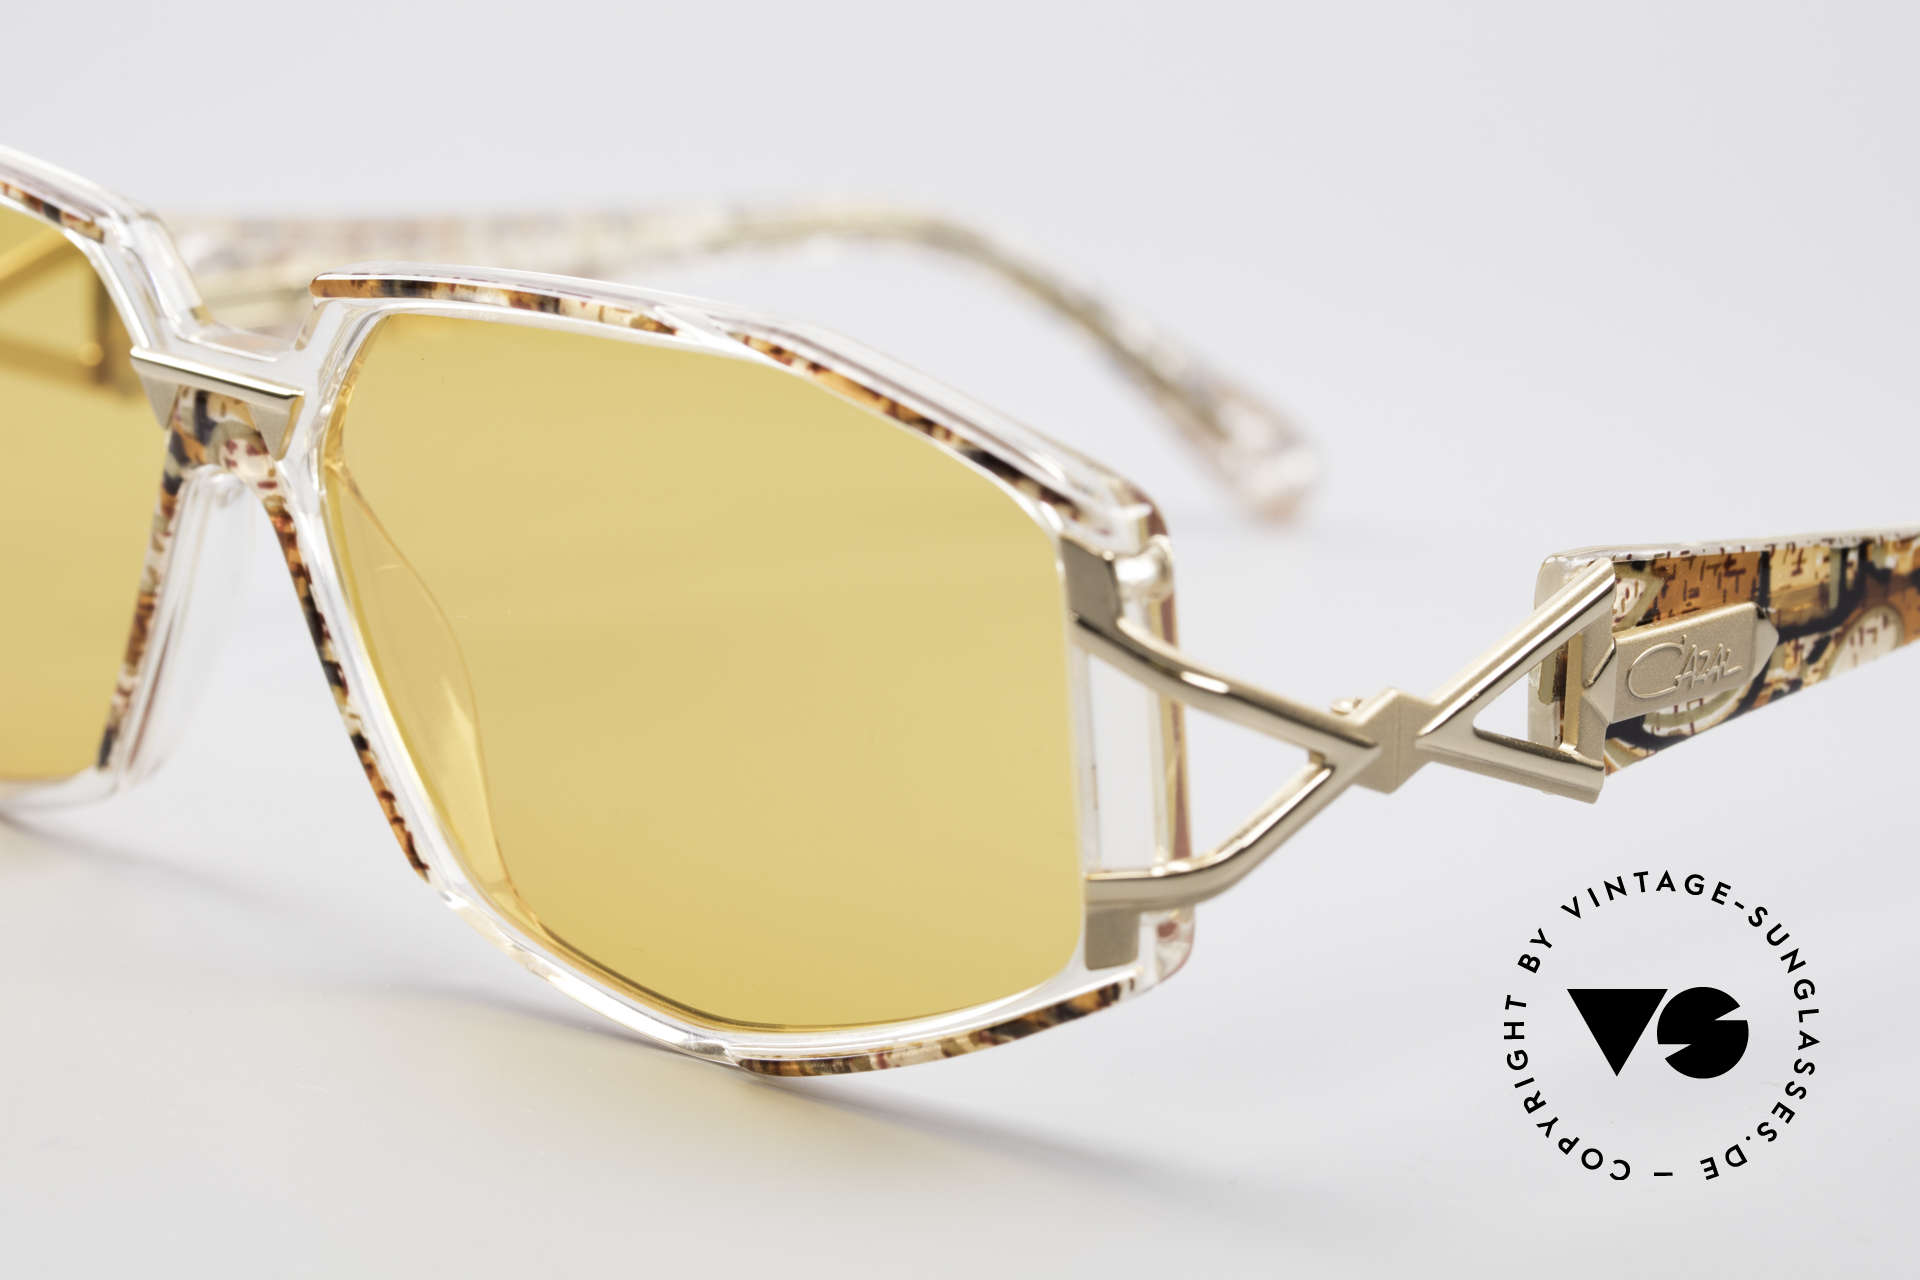 Cazal 368 90's Hip Hop Designer Frame, costly and fancy frame paintwork = distinctive CAZAL, Made for Women